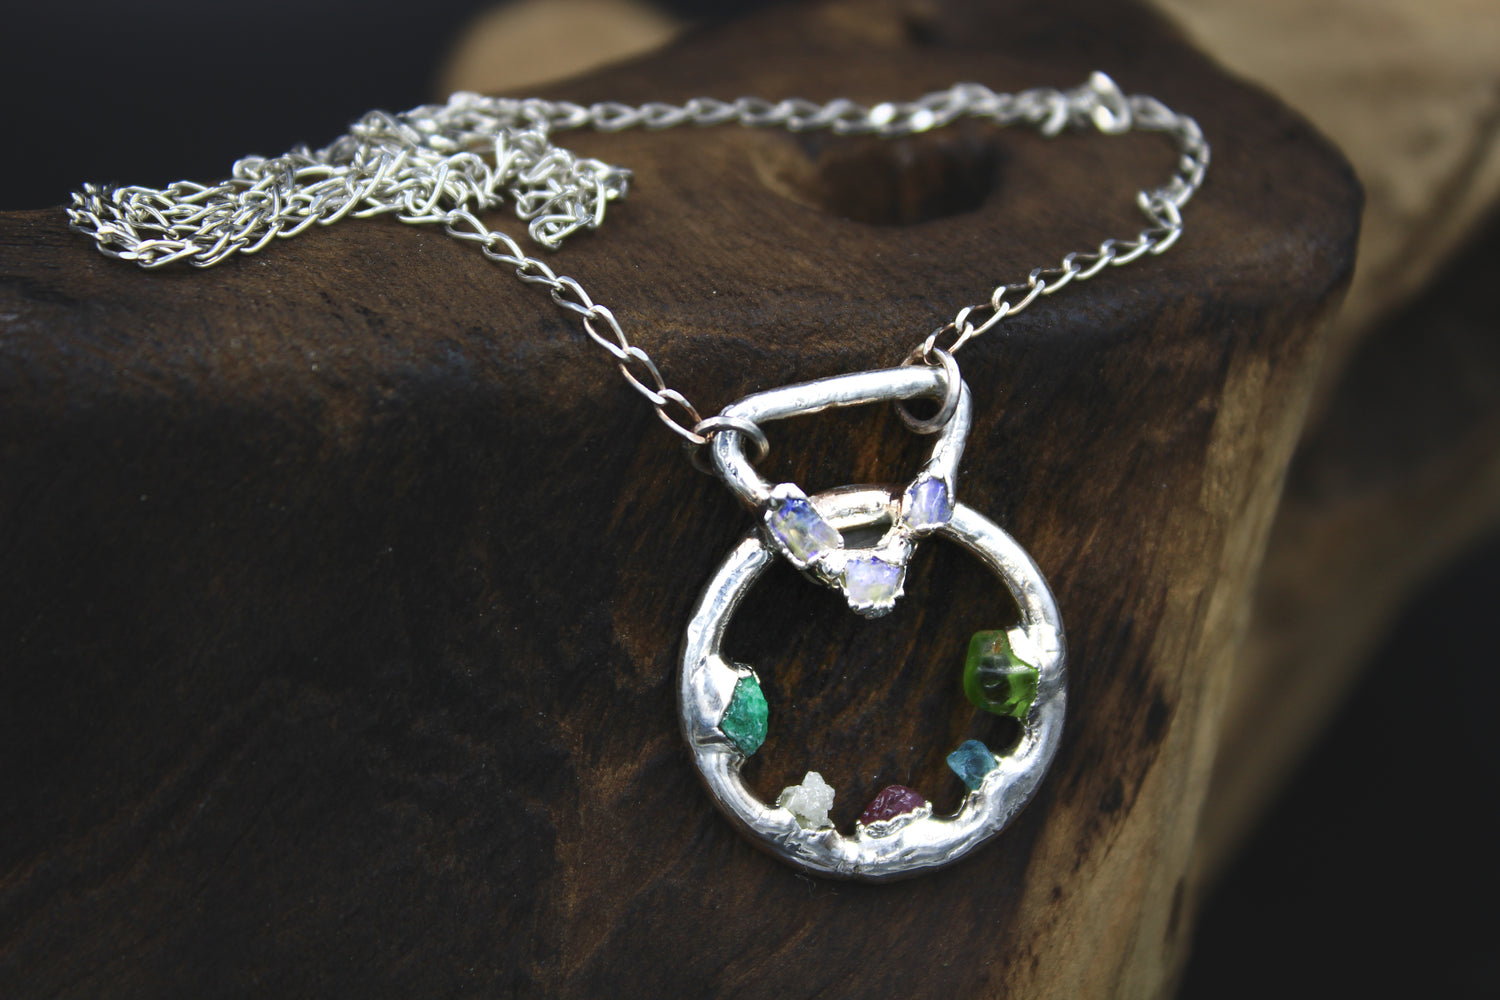 raw gemstone crystal birthstone necklace buzzfeed hannah williams fox&stone